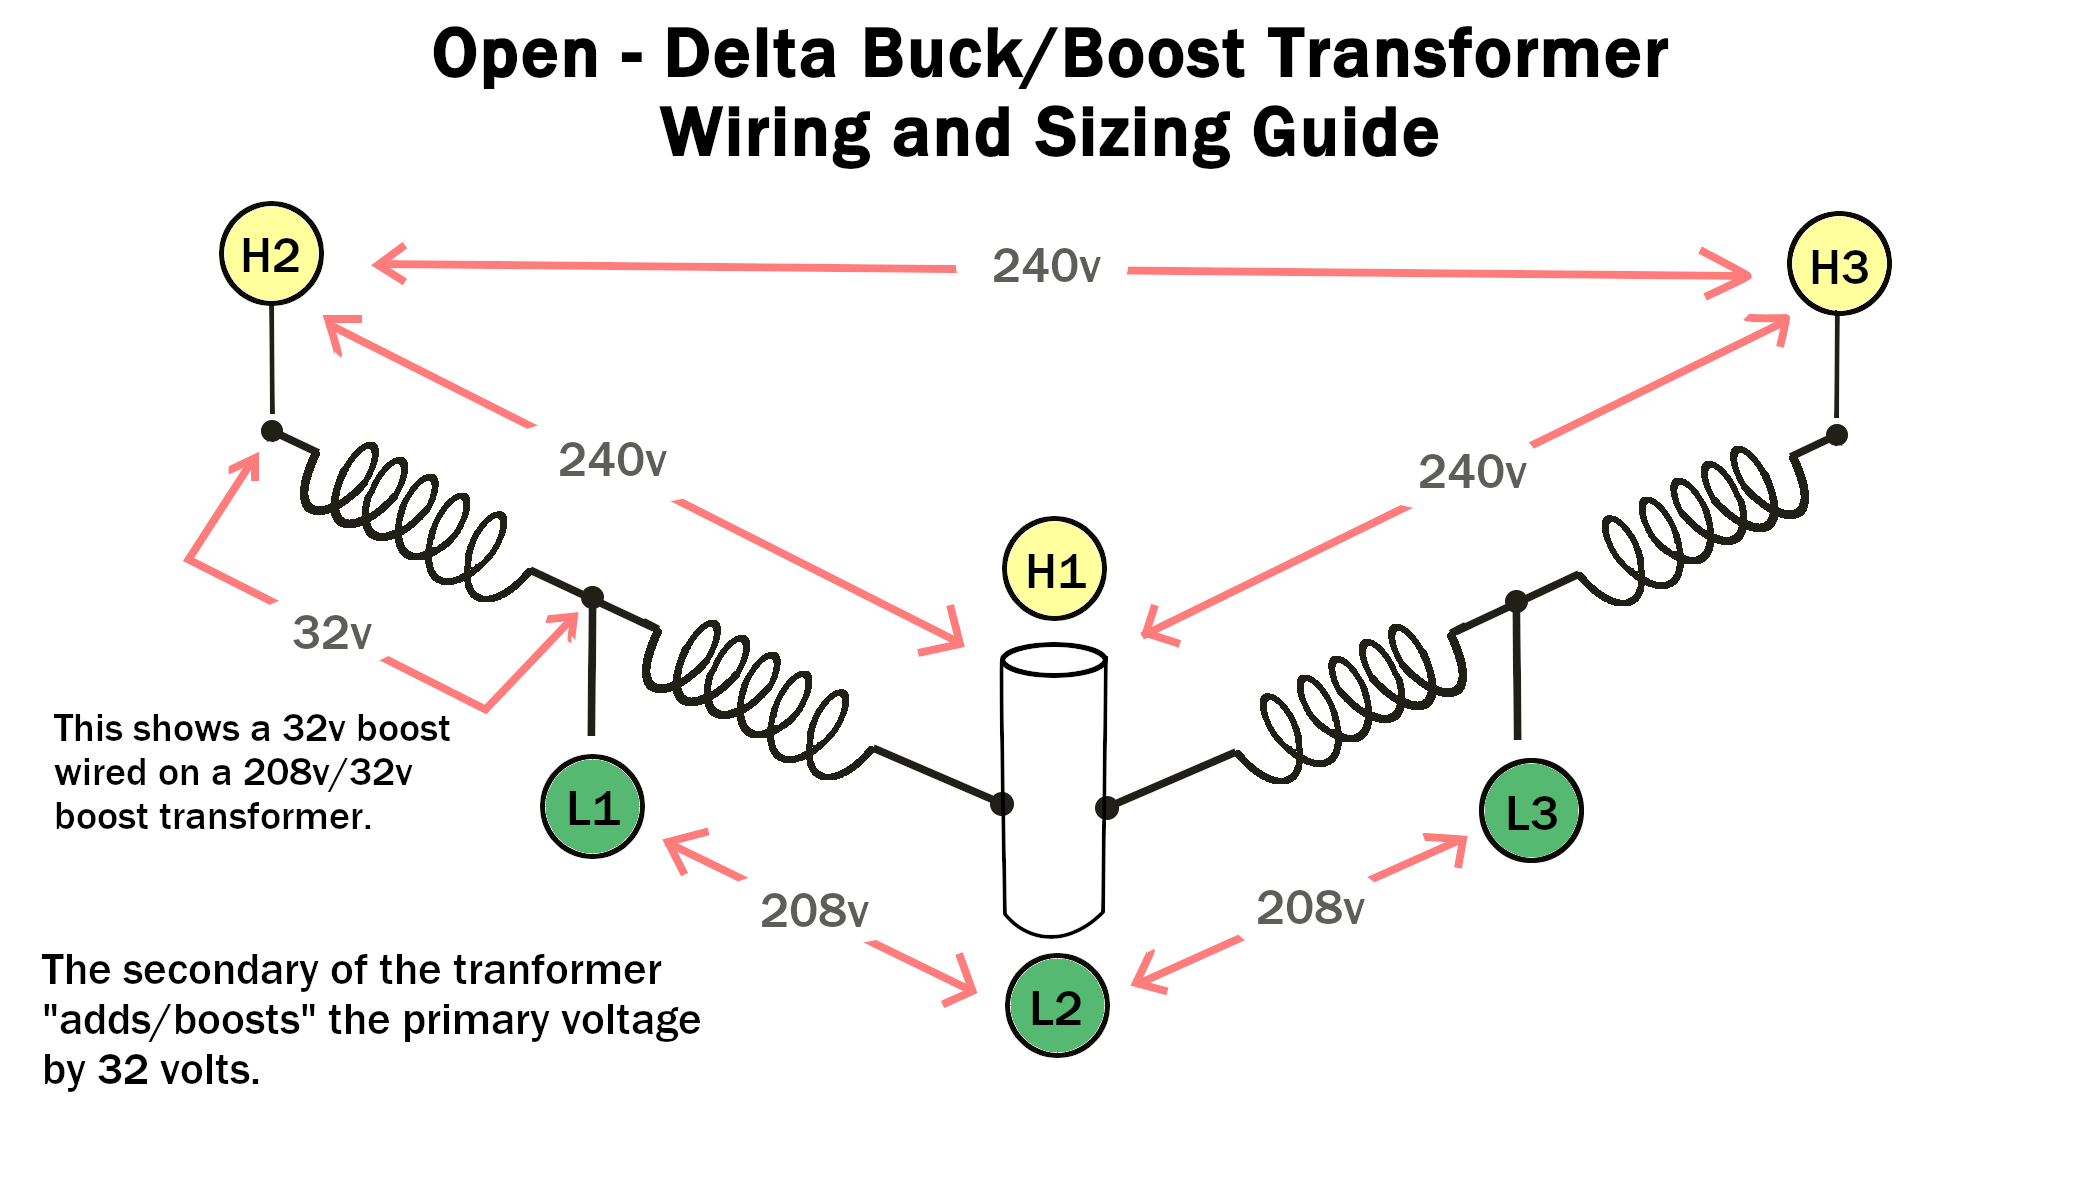 Milnor Article: How do I size and wire a Buck Boost transformer on